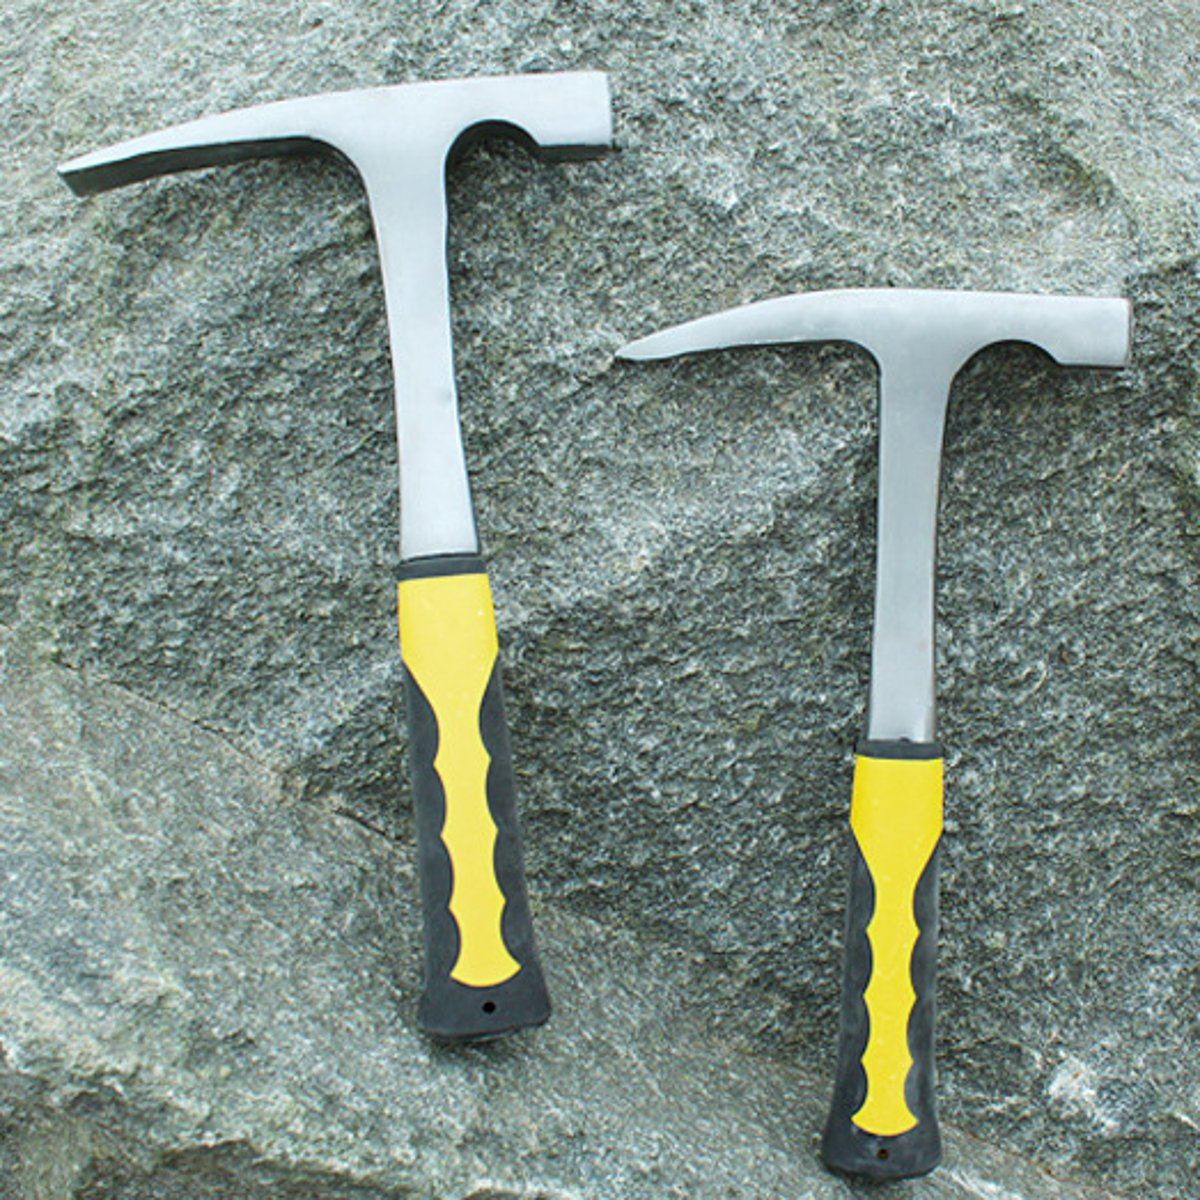 Flat/Pointed Carbon Steel Geological Hammer Shock Rock Reduction Outdoor Geology Exploration Teaching Multifuction Hand Tools